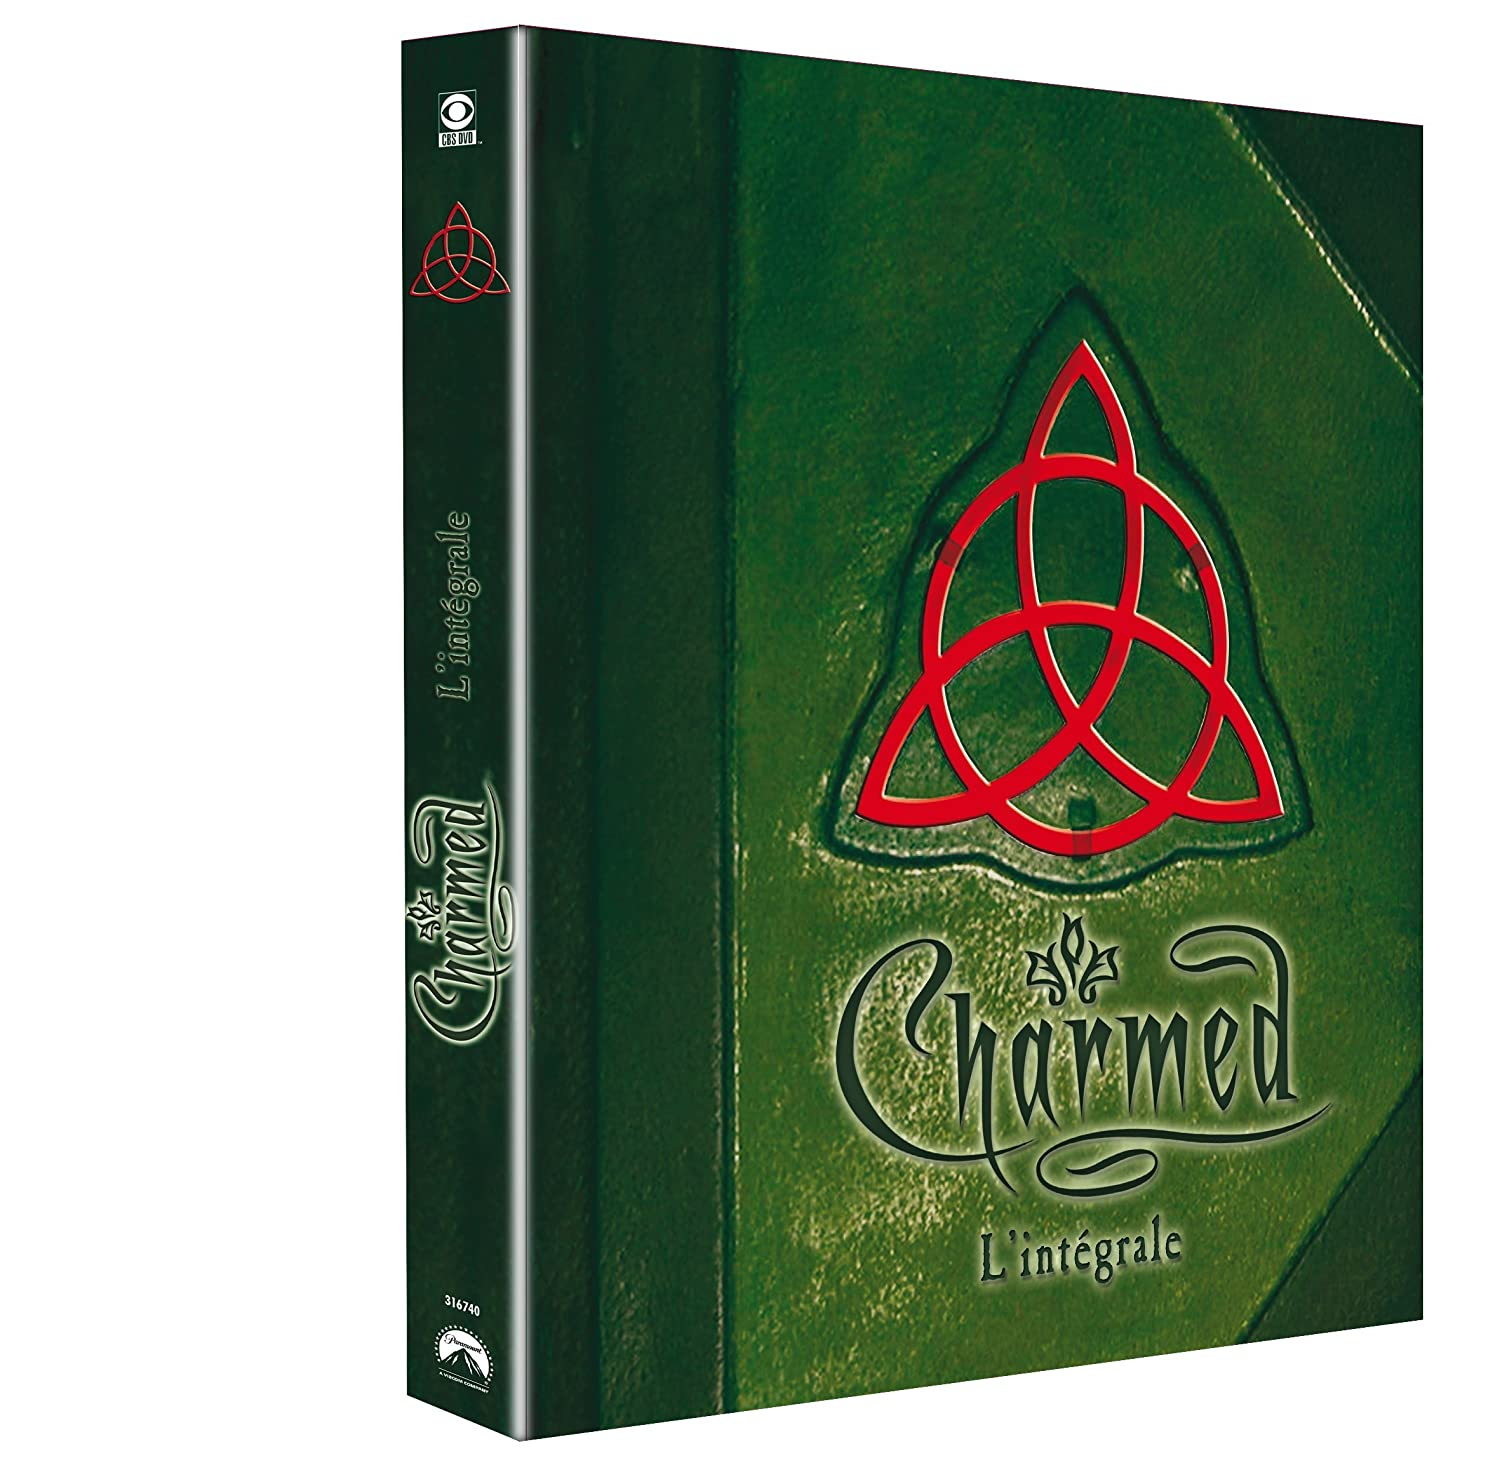 Charmed - Lintégrale [DVD]: Amazon.es: Holly Marie Combs, Alyssa Milano, Rose McGowan, Brian Krause, Dorian Gregory, Julian McMahon, Holly Marie Combs, Alyssa Milano: Cine y Series TV